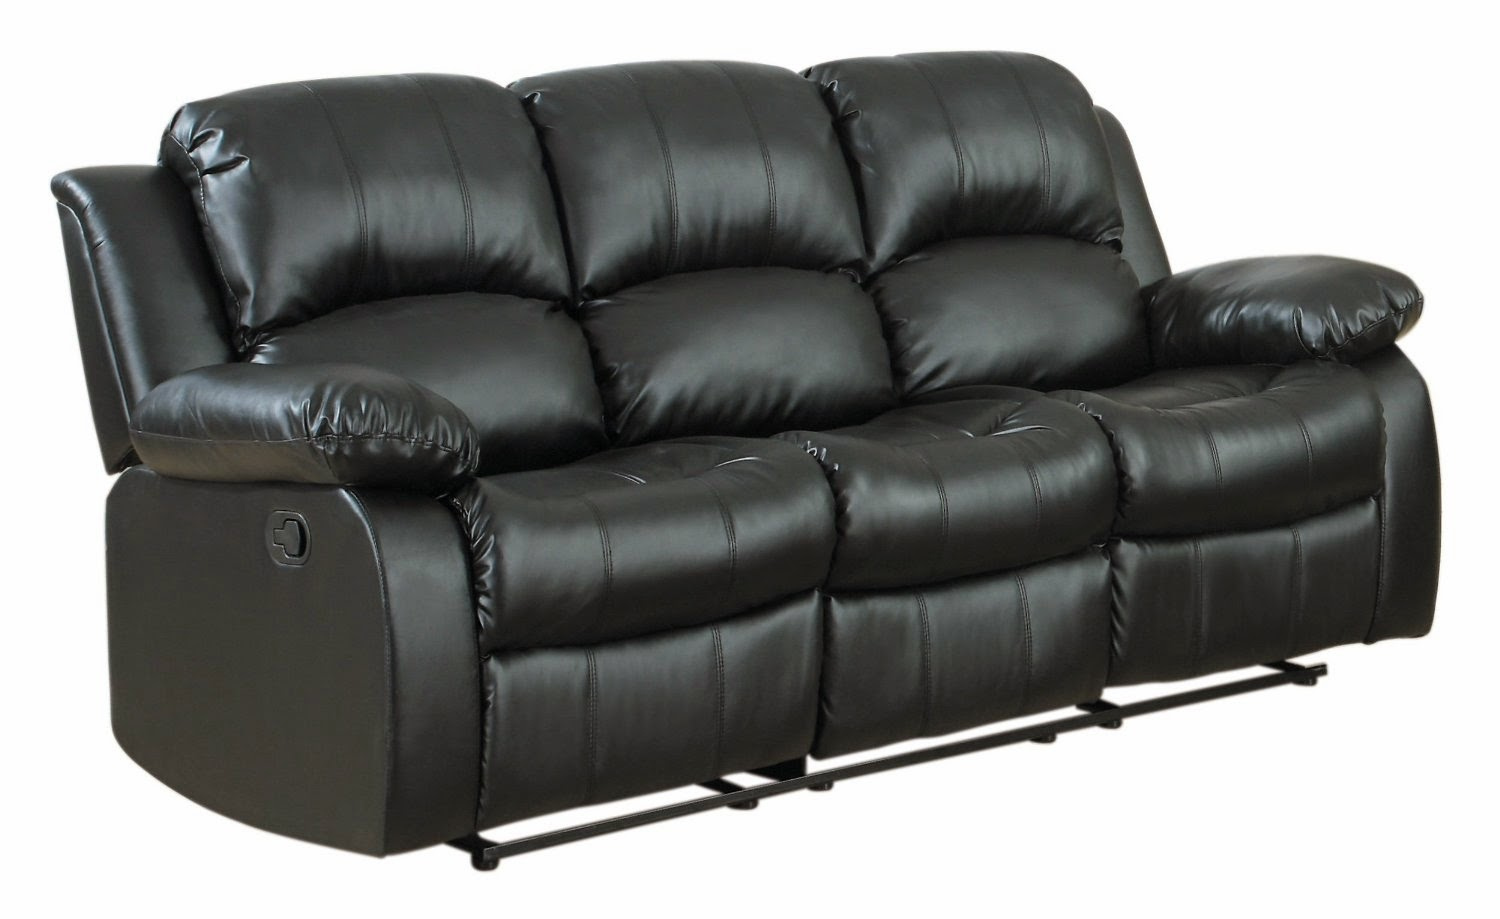 cheap leather sectional sofa bed single lazada best recliner brand recommendation wanted